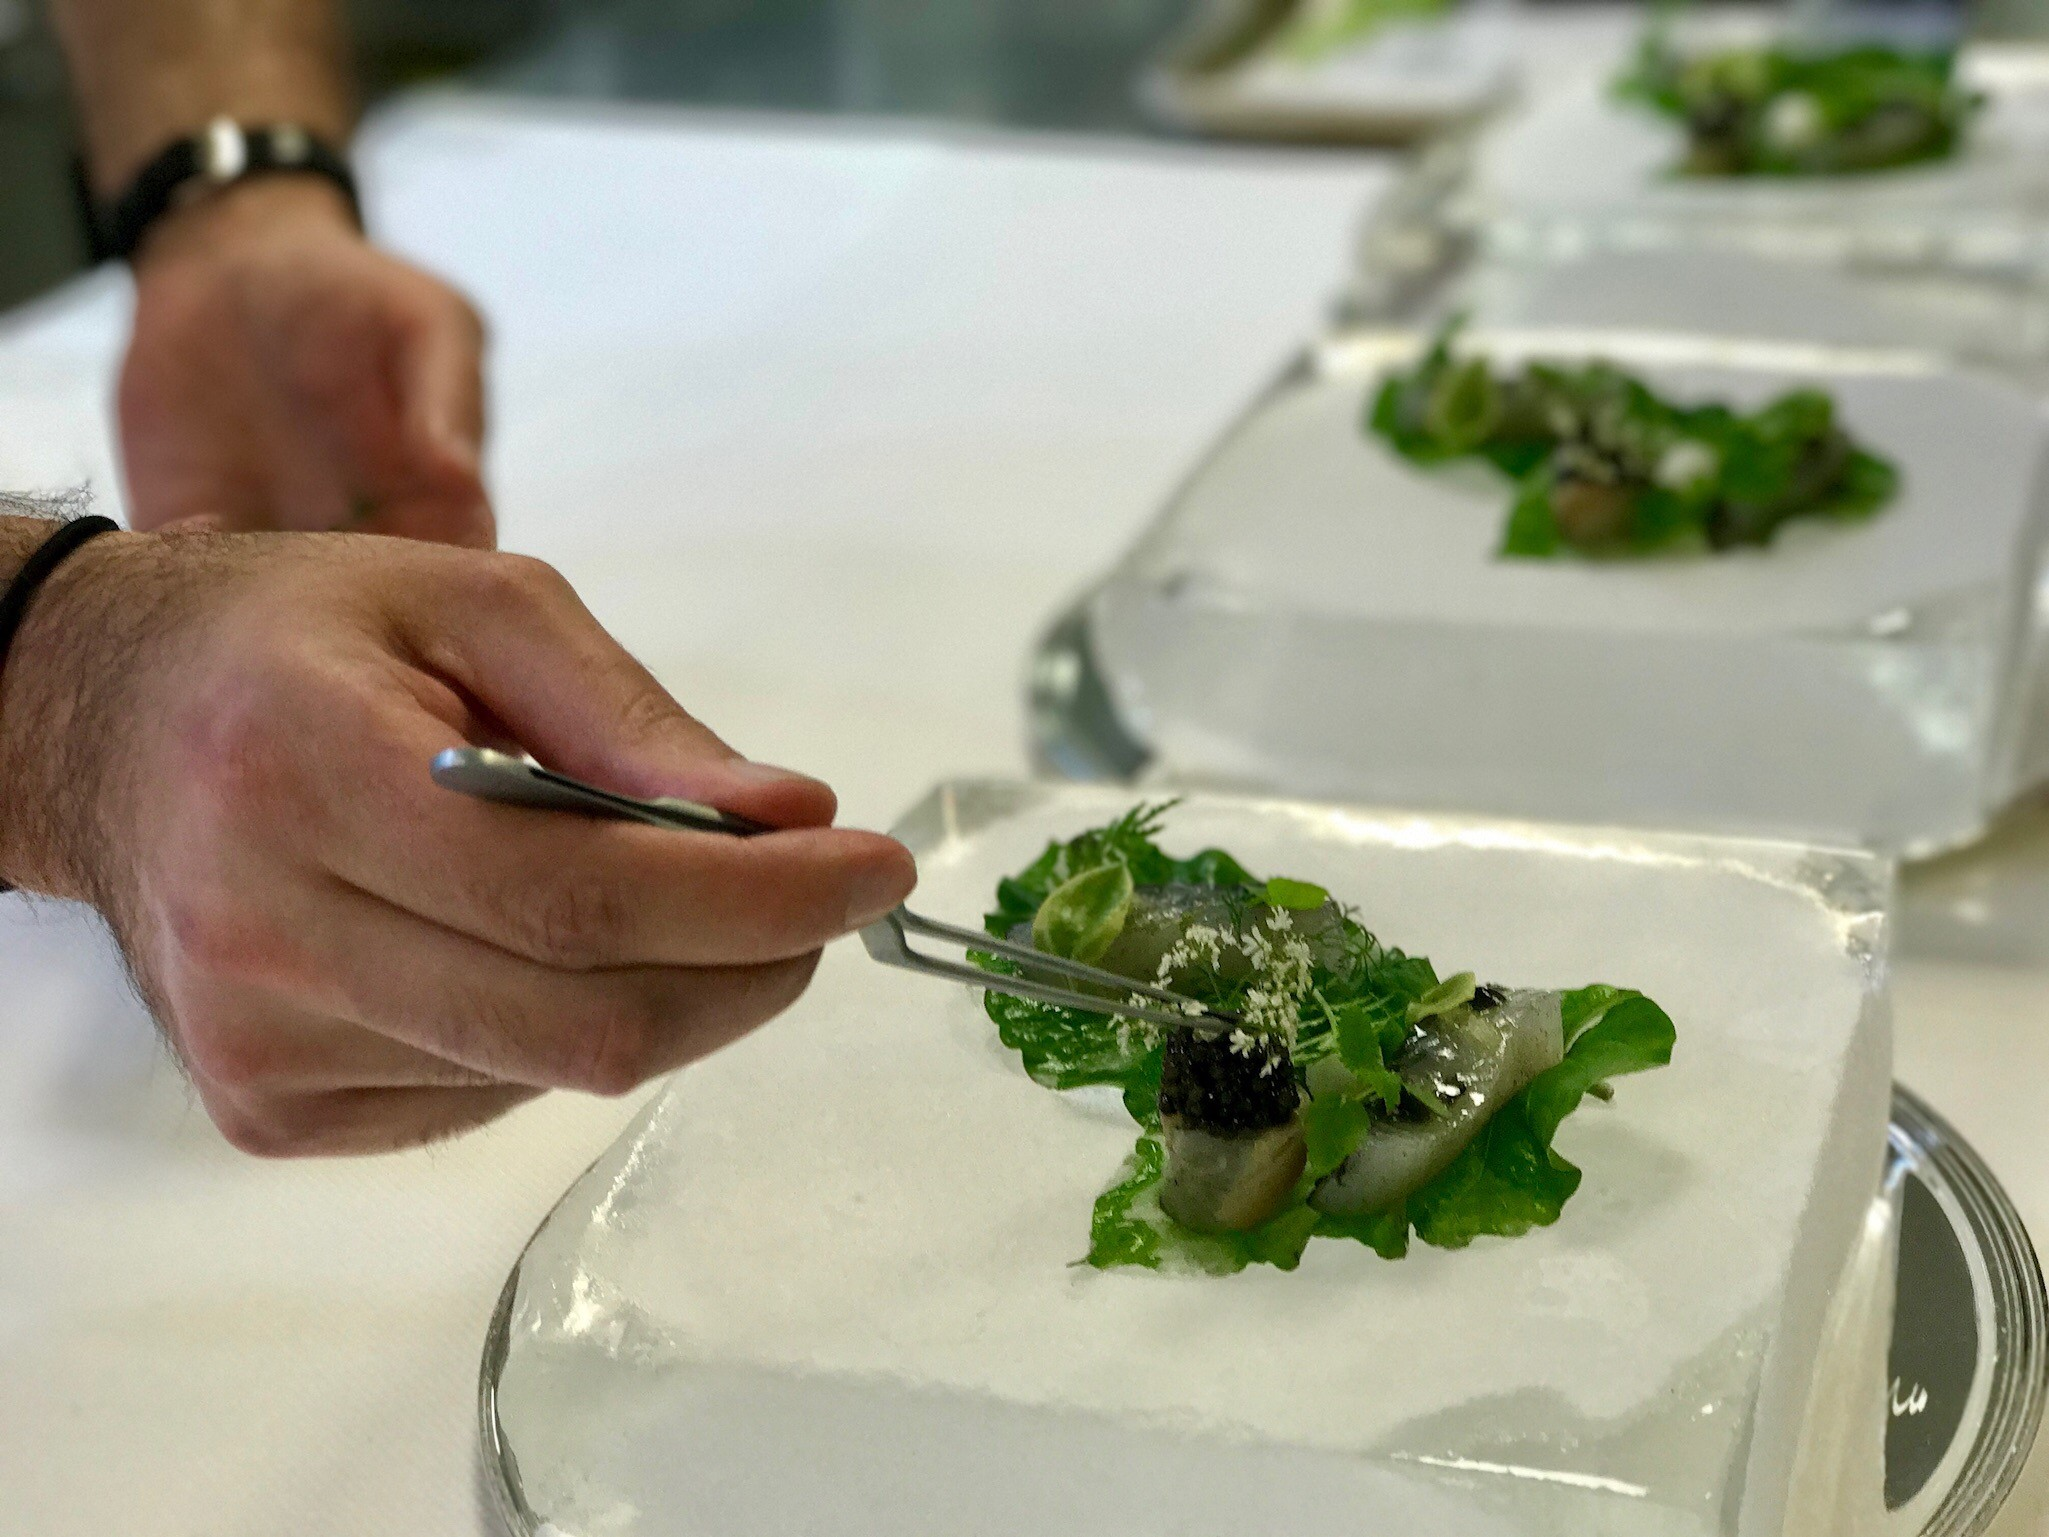 Chef Paul Liebrandt perfecting his Mosaic of Madai dish on a fresh ice block. (Image: Courtesy The Watergate Hotel)